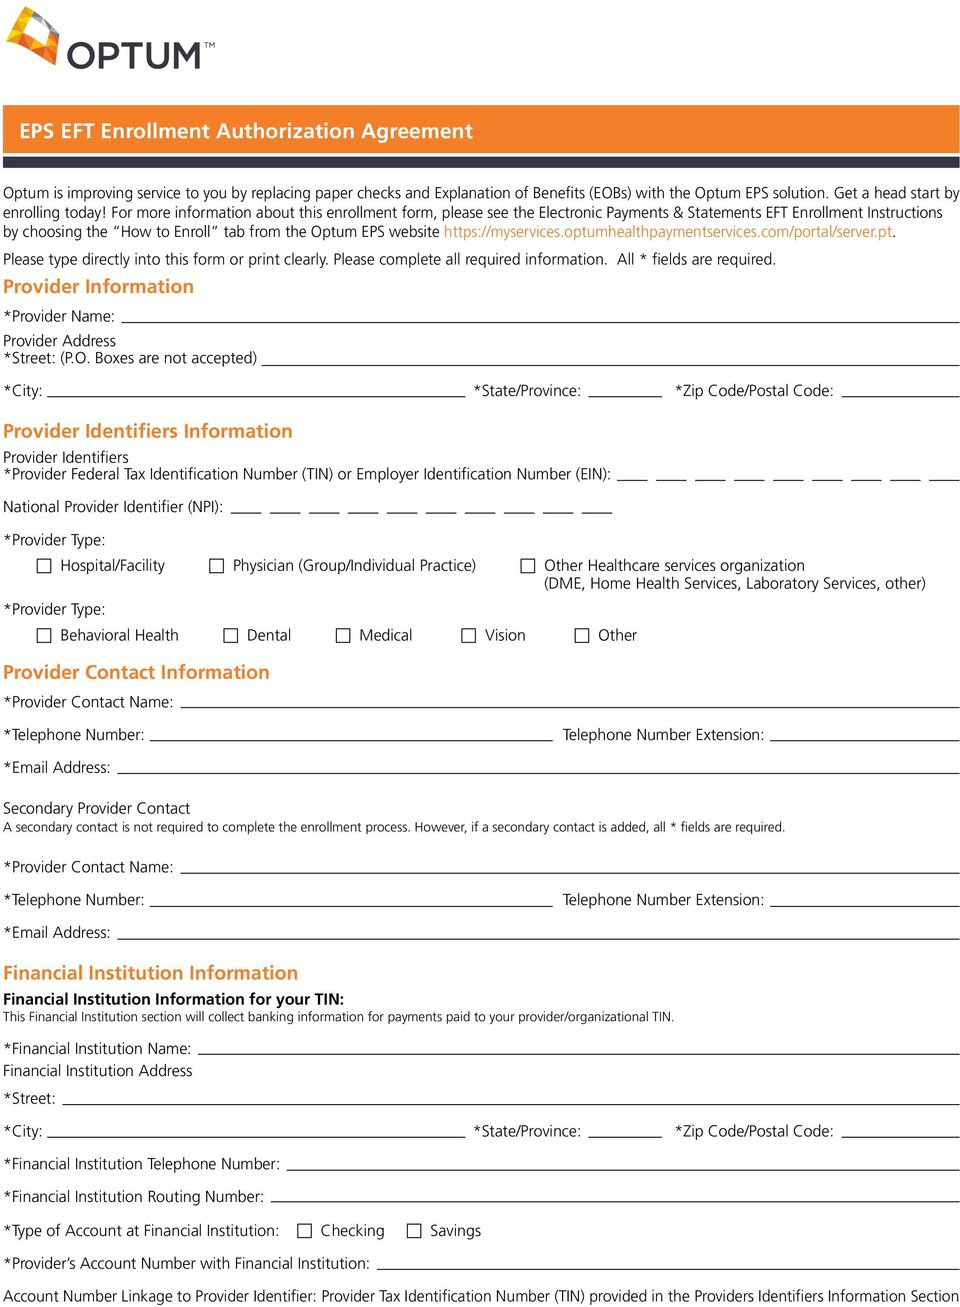 For more information about this enrollment form, please see the Electronic Payments & Statements EFT Enrollment Instructions by choosing the How to Enroll tab from the Optum EPS website